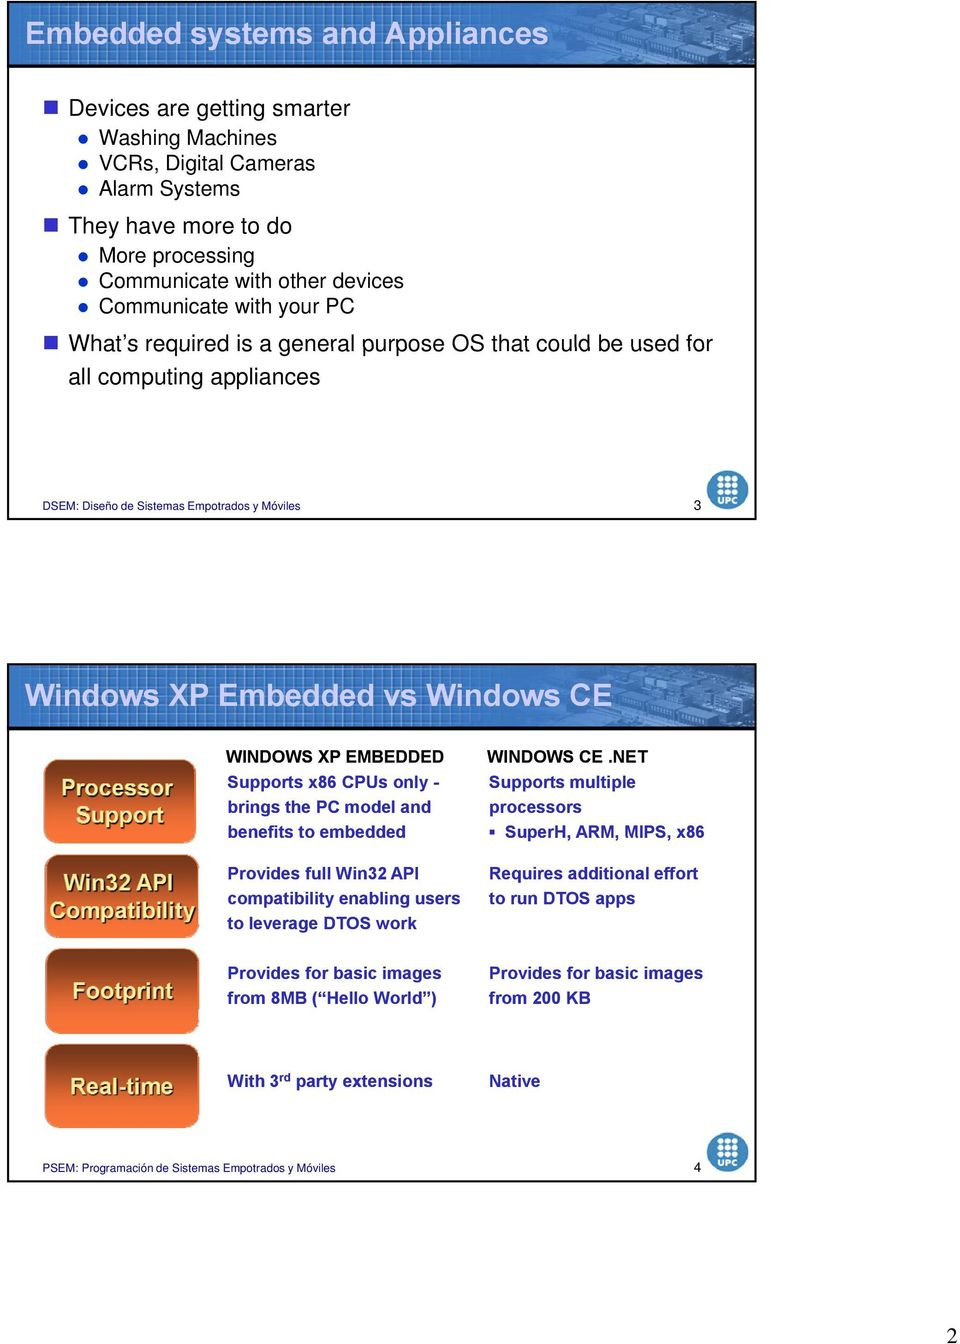 Win32 API Compatibility WINDOWS XP EMBEDDED Supports x86 CPUs only - brings the PC model and benefits to embedded Provides full Win32 API compatibility enabling users to leverage DTOS work WINDOWS CE.